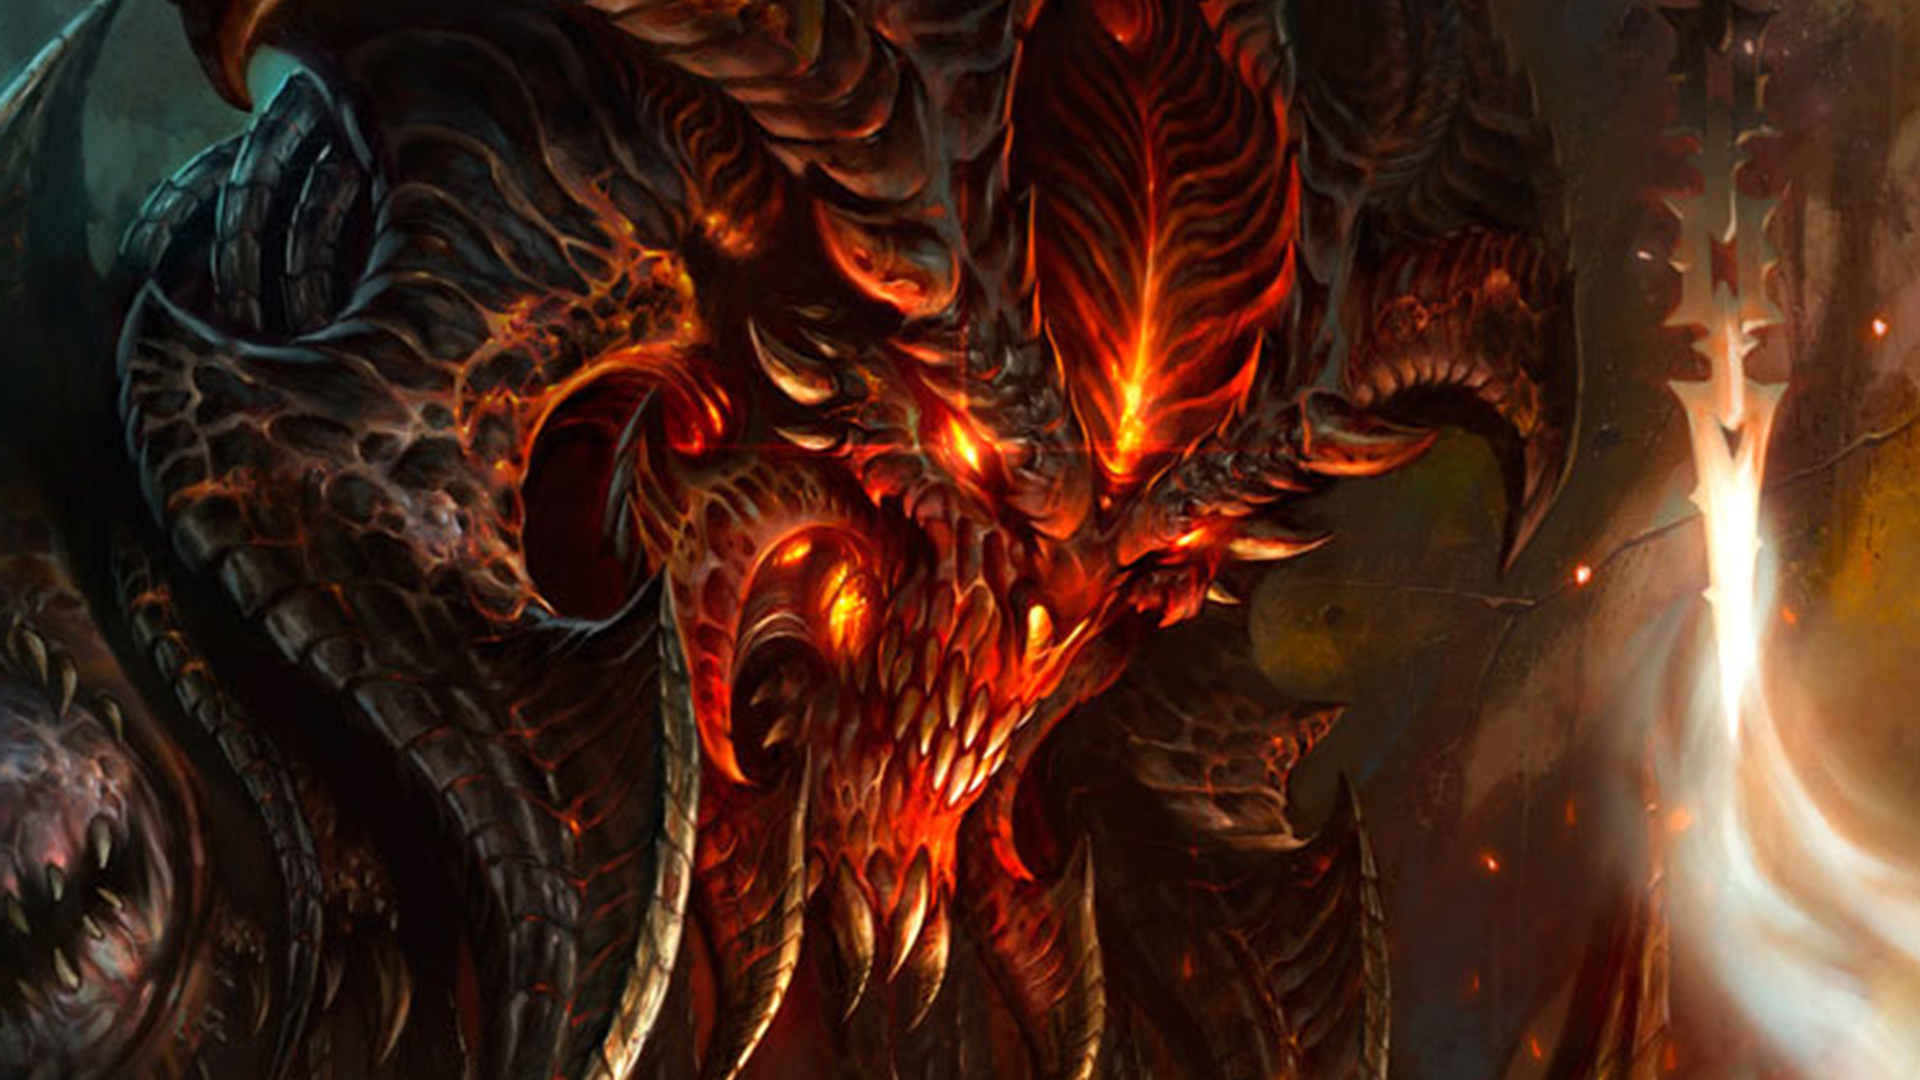 Diablo character sparks a trademark fight between Blizzard and Fox